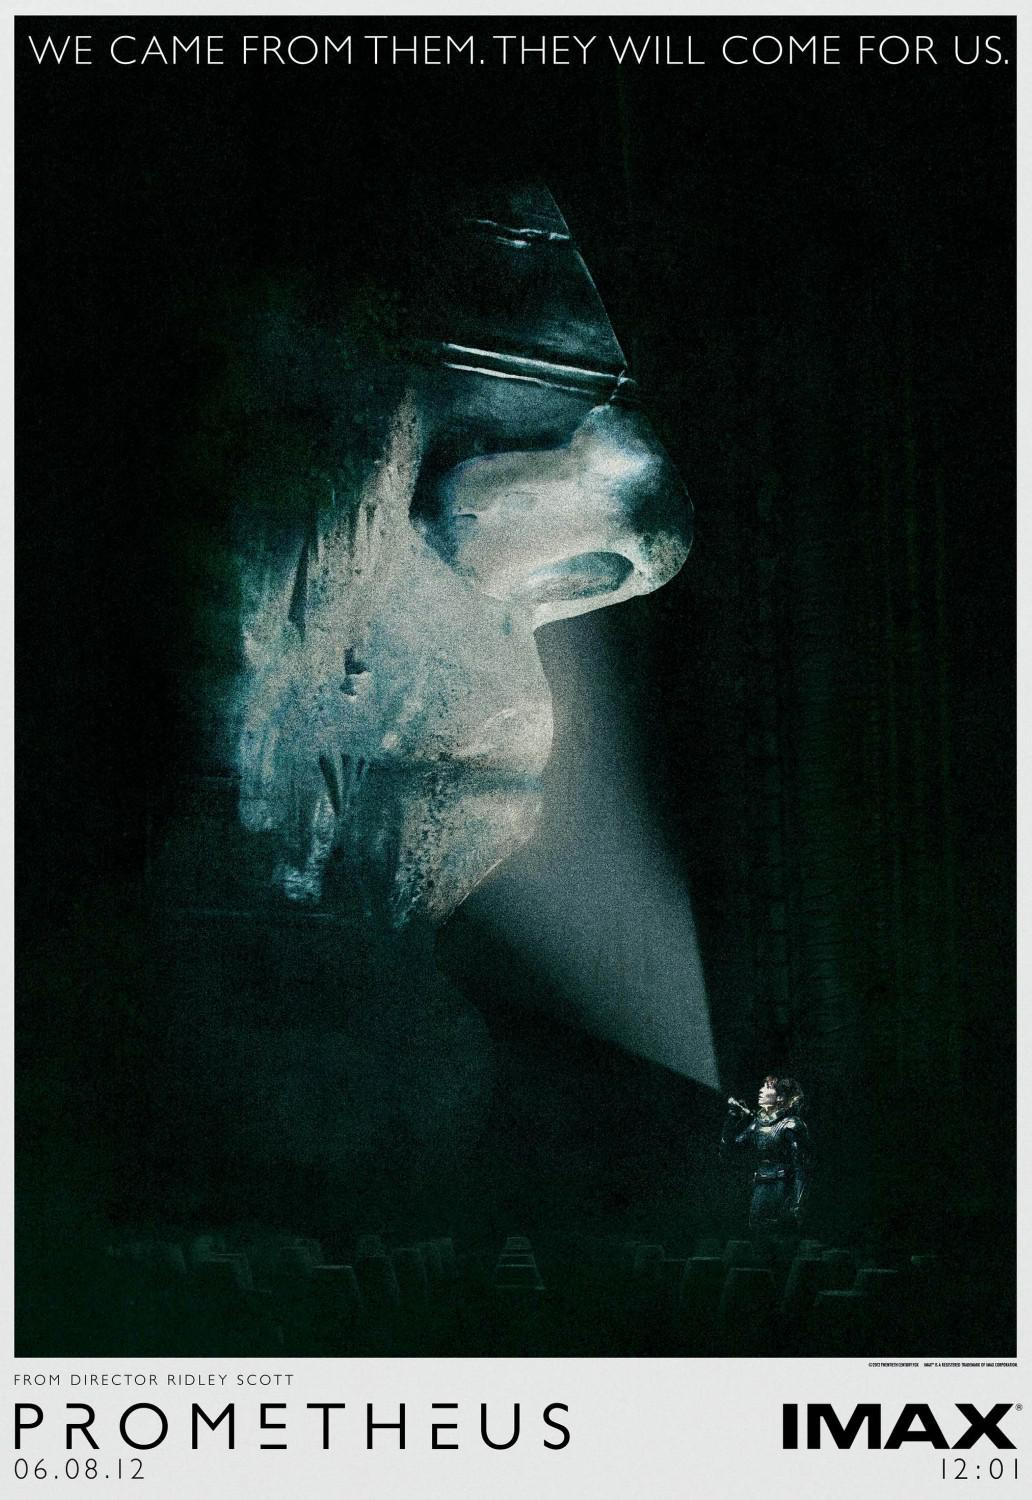 Prometheus - alien universe - film poster  - We came from them. They will come for us